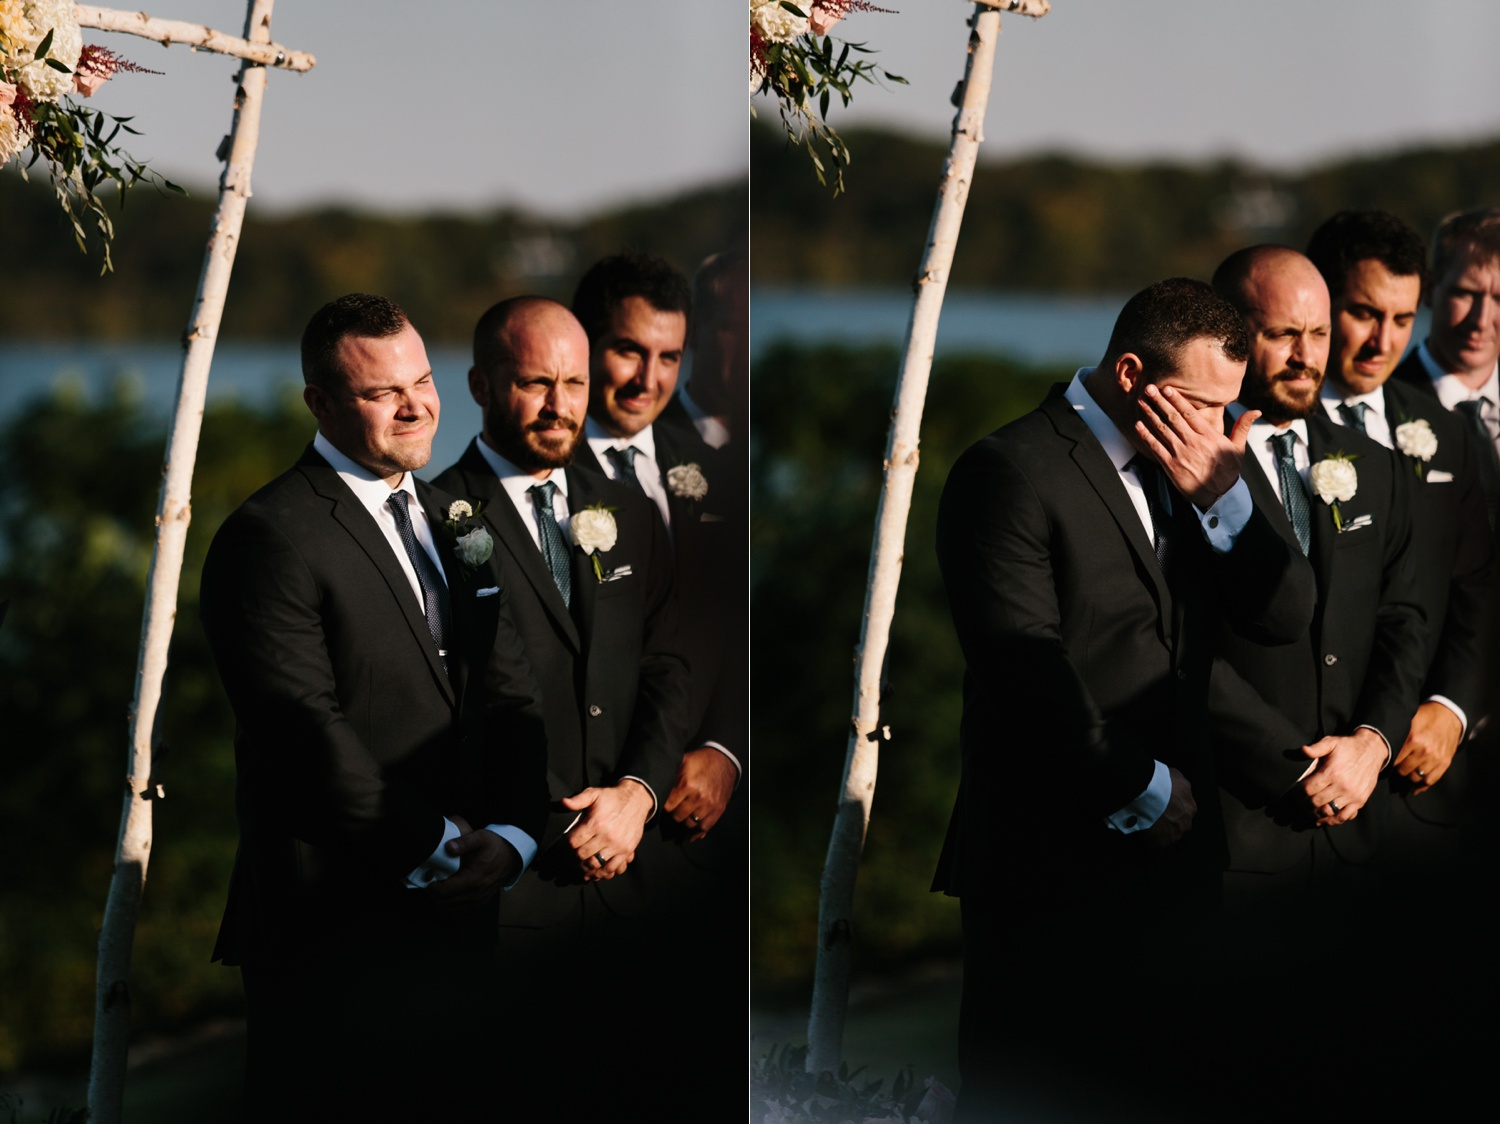 Kadee + Tyler | a raw, emotional wedding at the Filter Building on White Rock Lake in Dallas, TX by North Texas Wedding Photographer, Rachel Meagan Photography 123